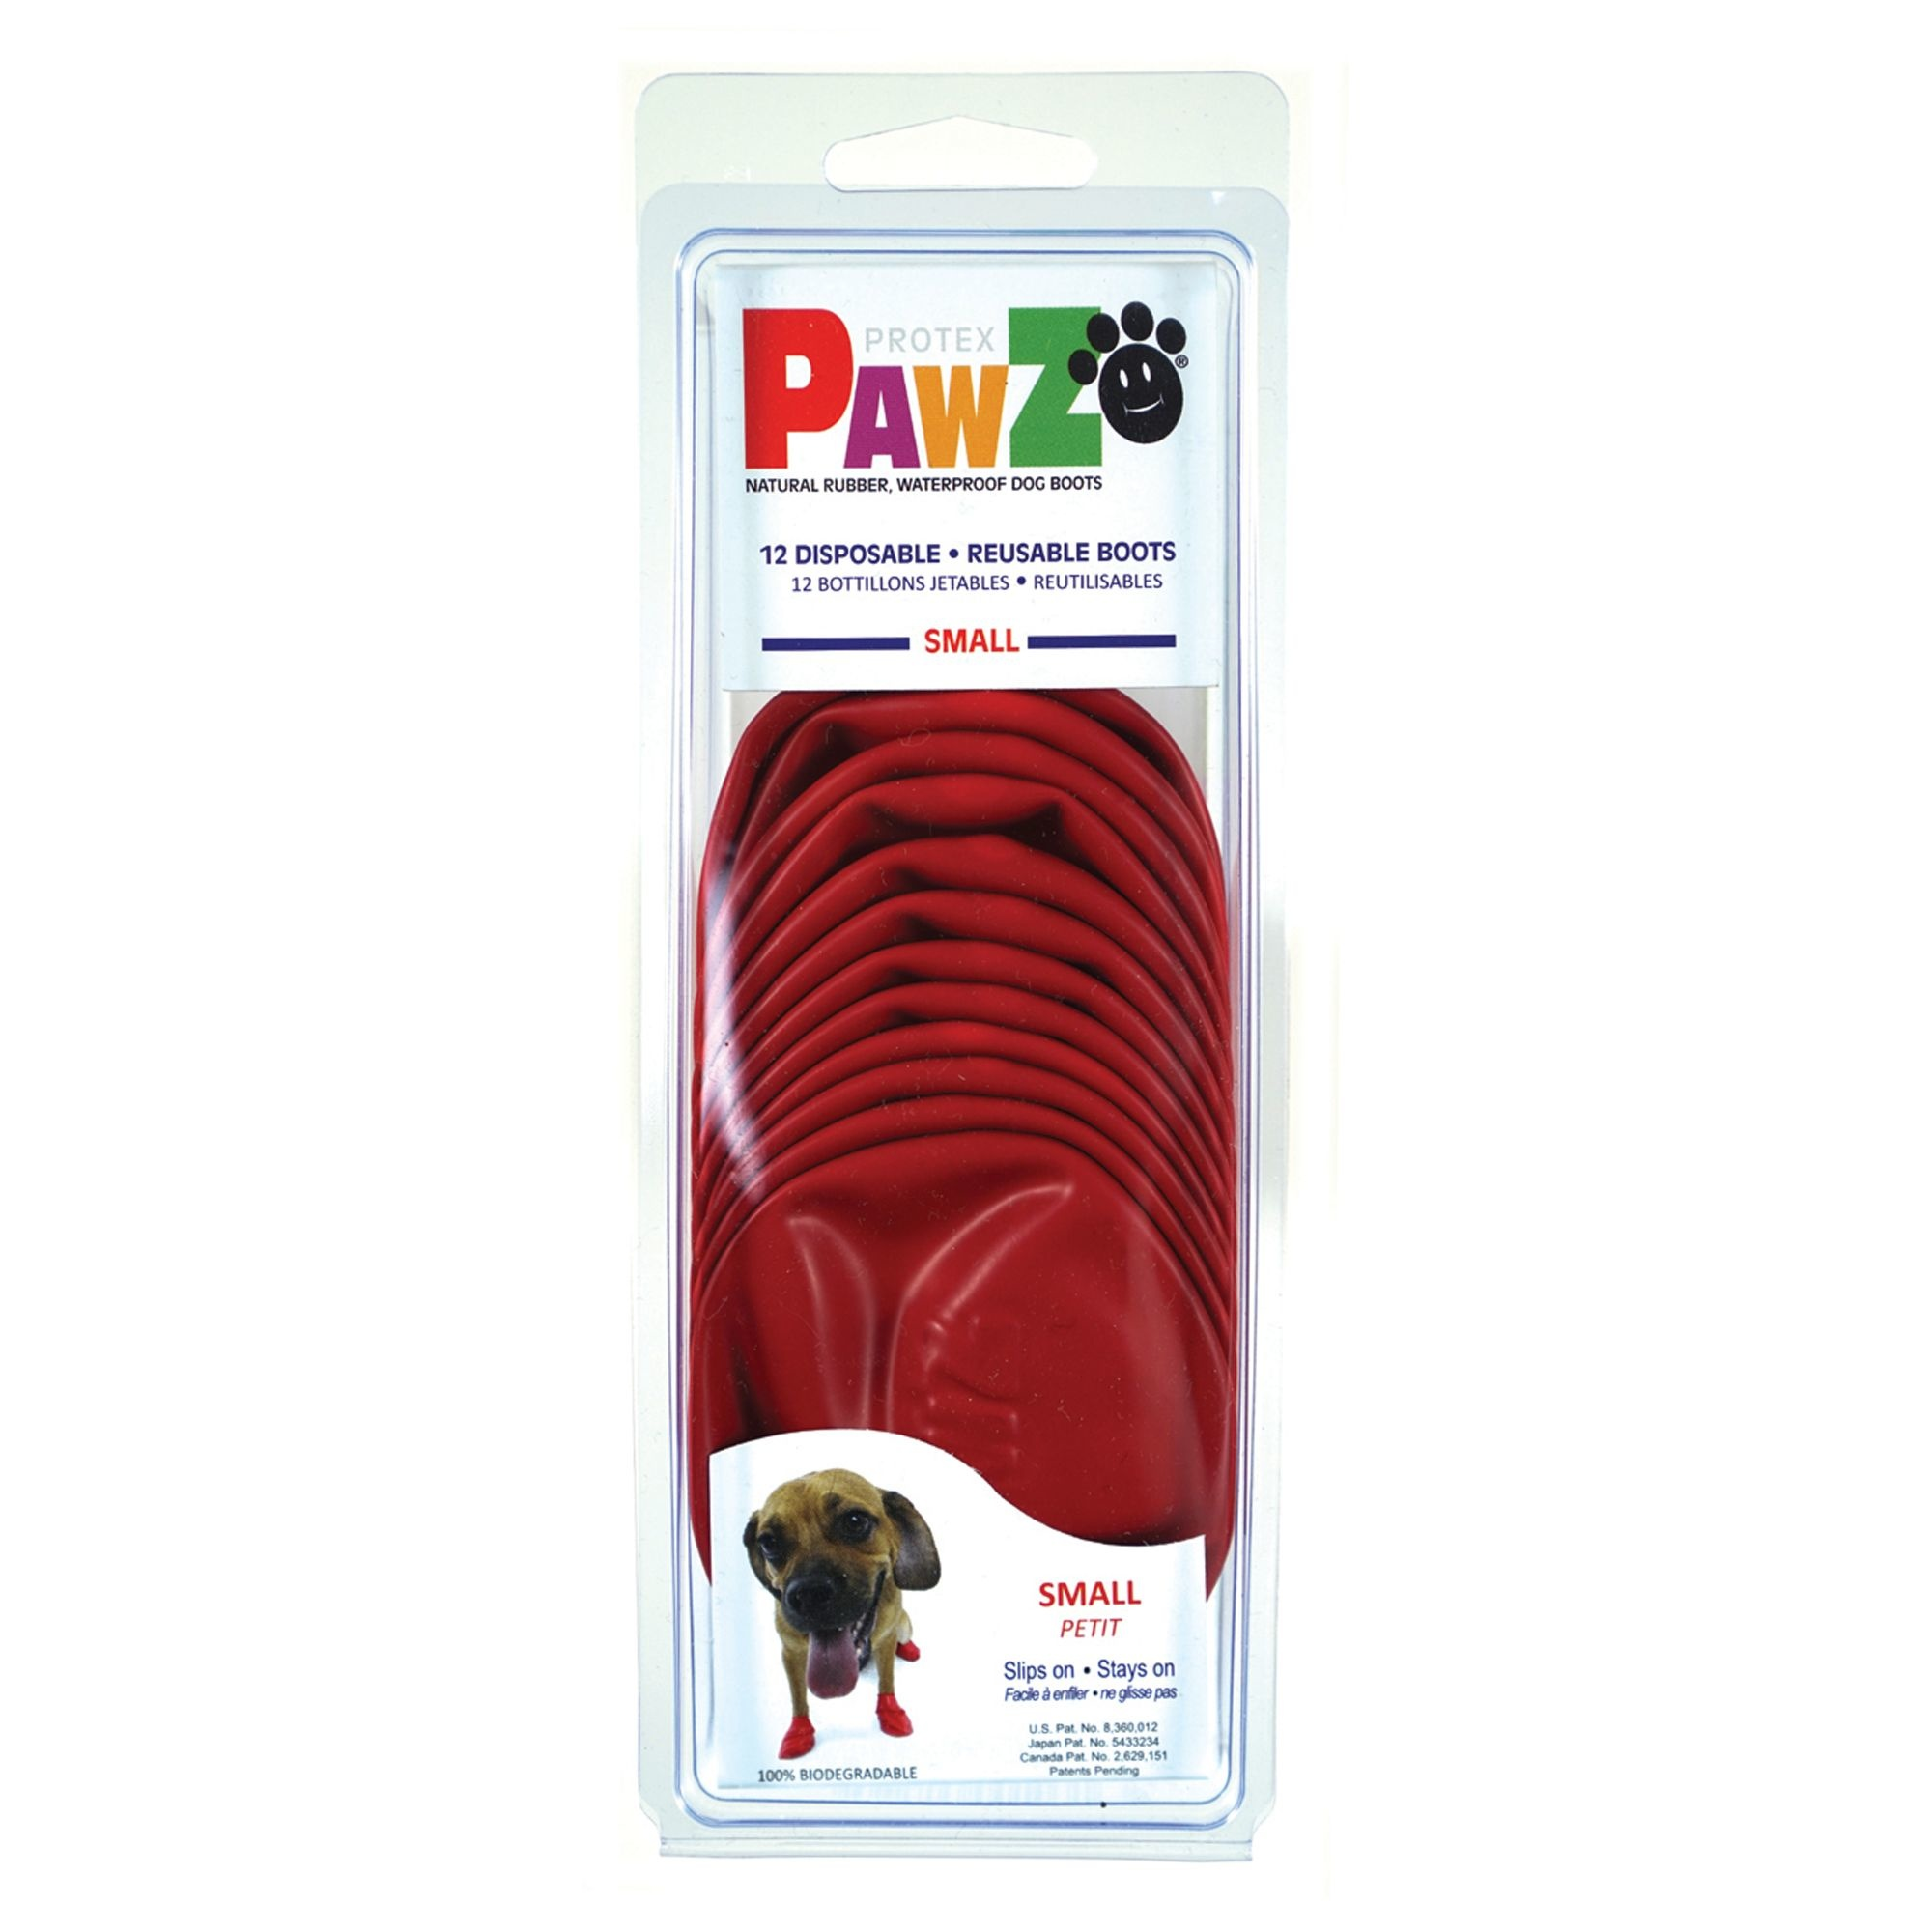 Pawz PawZ Disposable Rubber Dog Boots 12pk